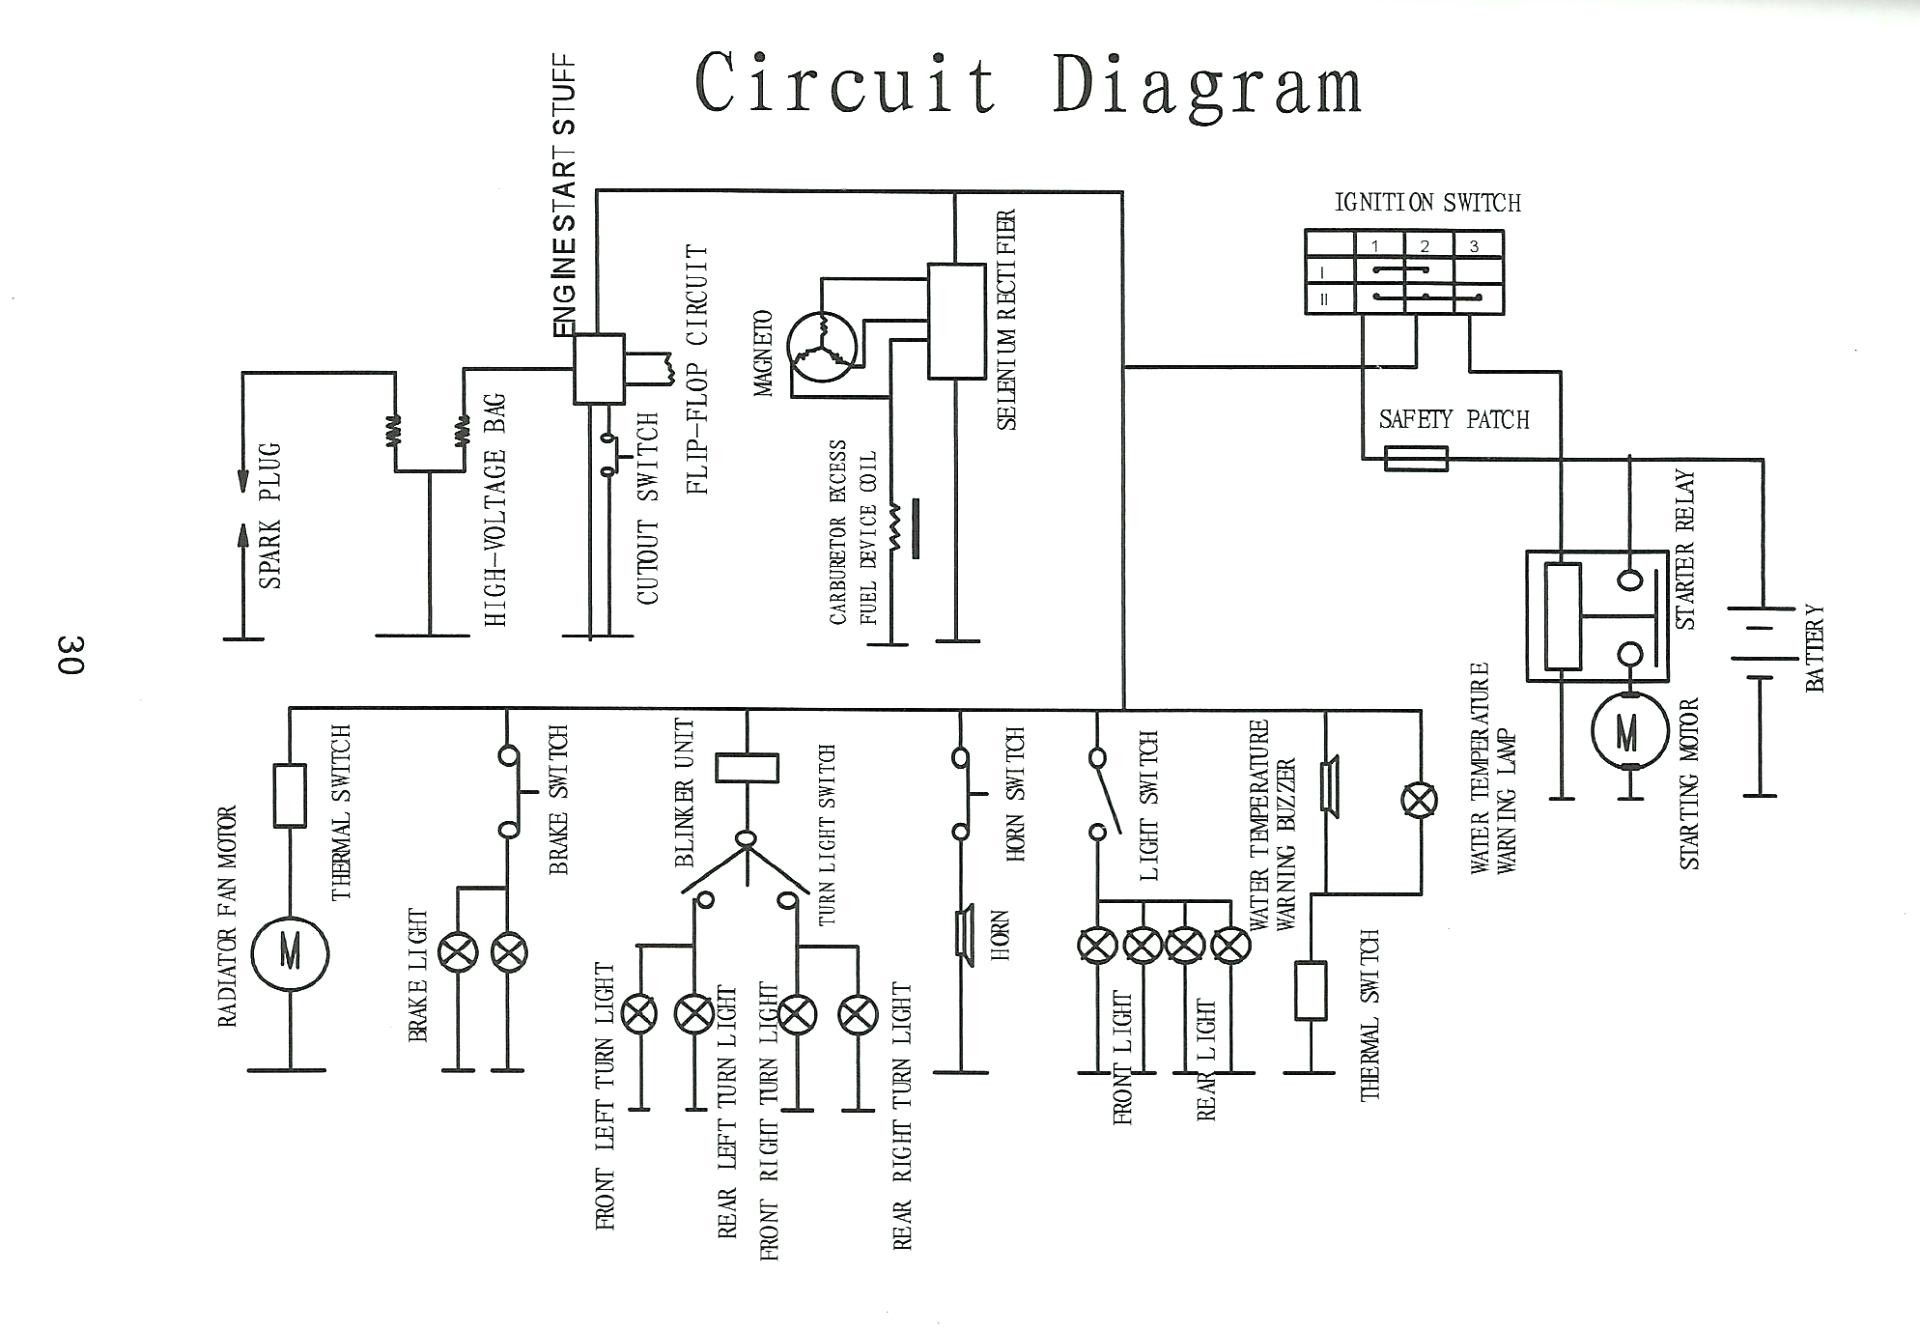 Diagram Chinese Scooter Tao Wiring Diagram Full Version Hd Quality Wiring Diagram Diagramcarrm Migliorcialda It